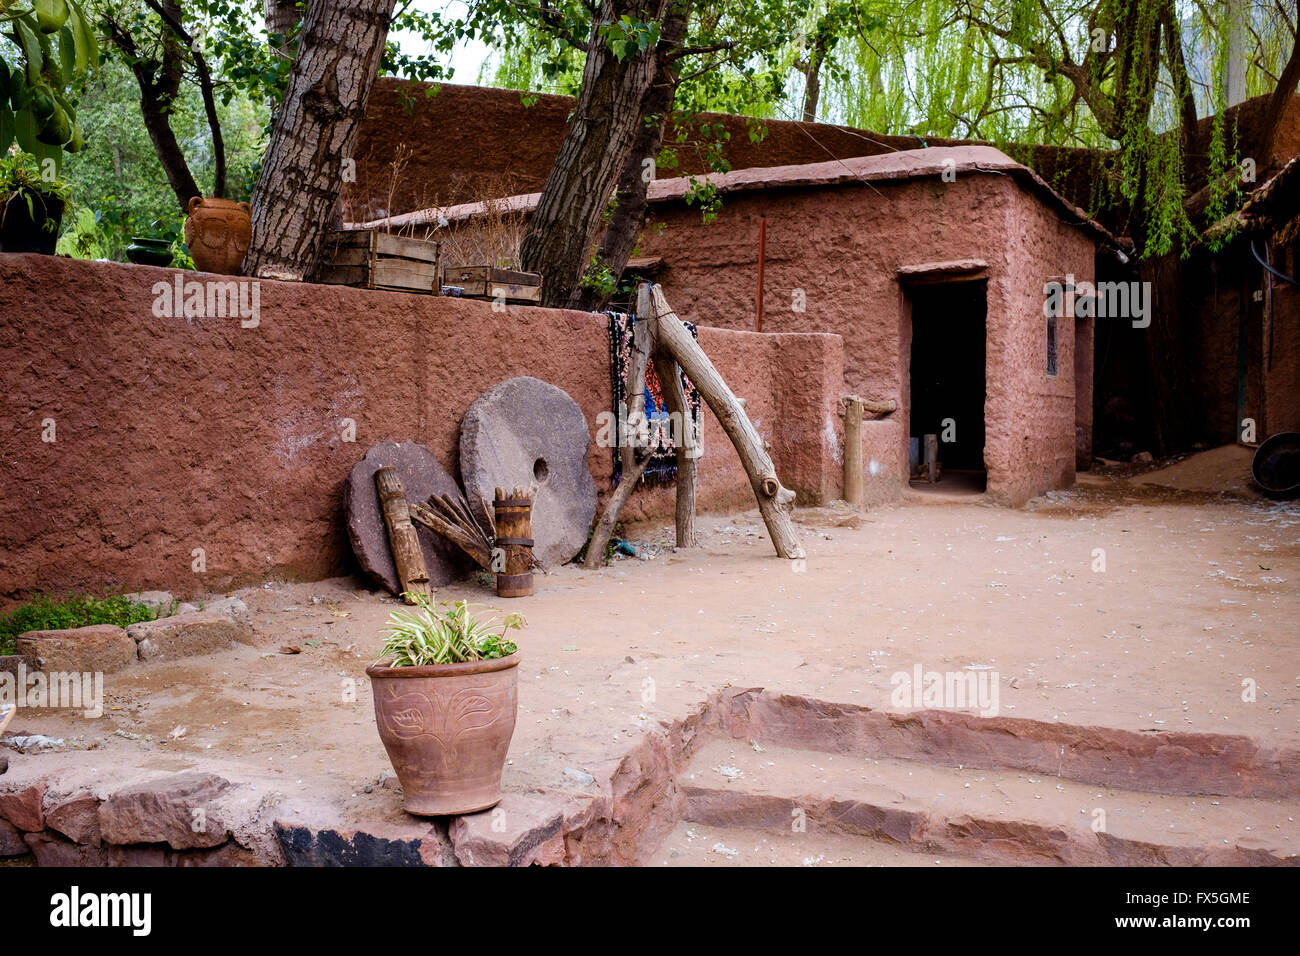 The courtyard of a Berber house in the Ourika Valley, Morocco, North Africa - Stock Image